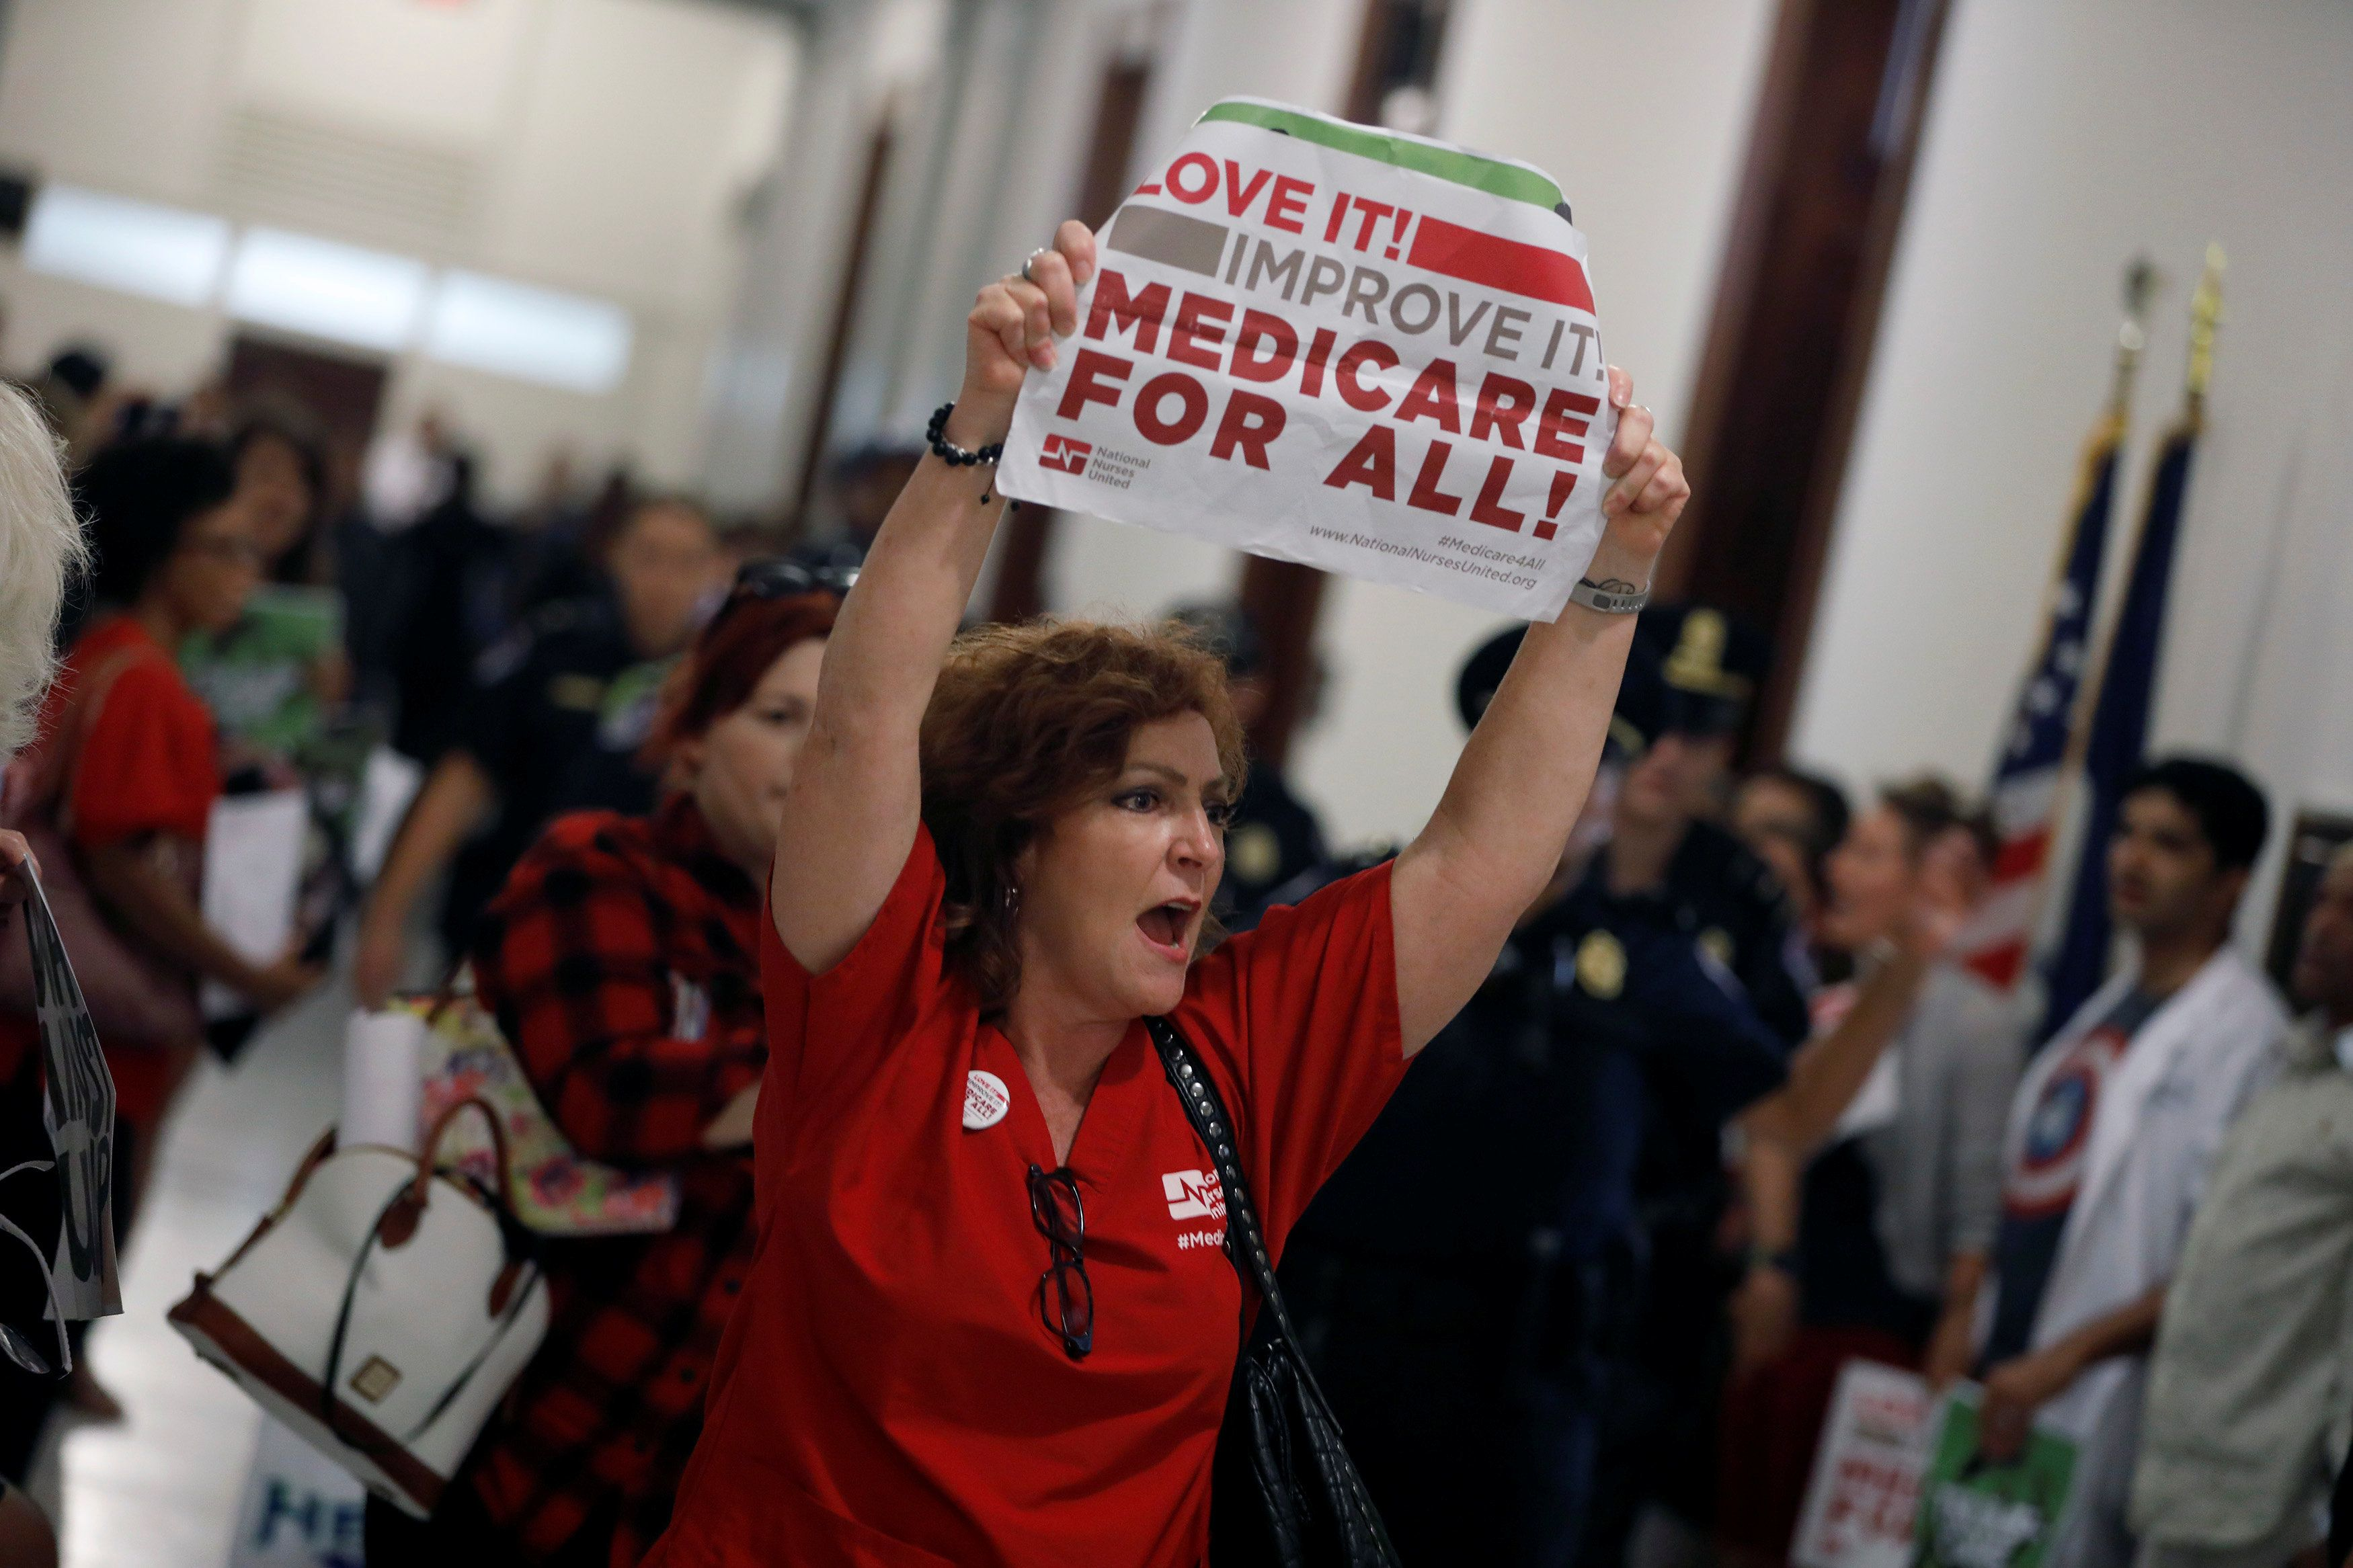 Healthcare activists protest against the Republican healthcare bill on Capitol Hill in Washington, U.S., July 19, 2017. REUTERS/Aaron P. Bernstein